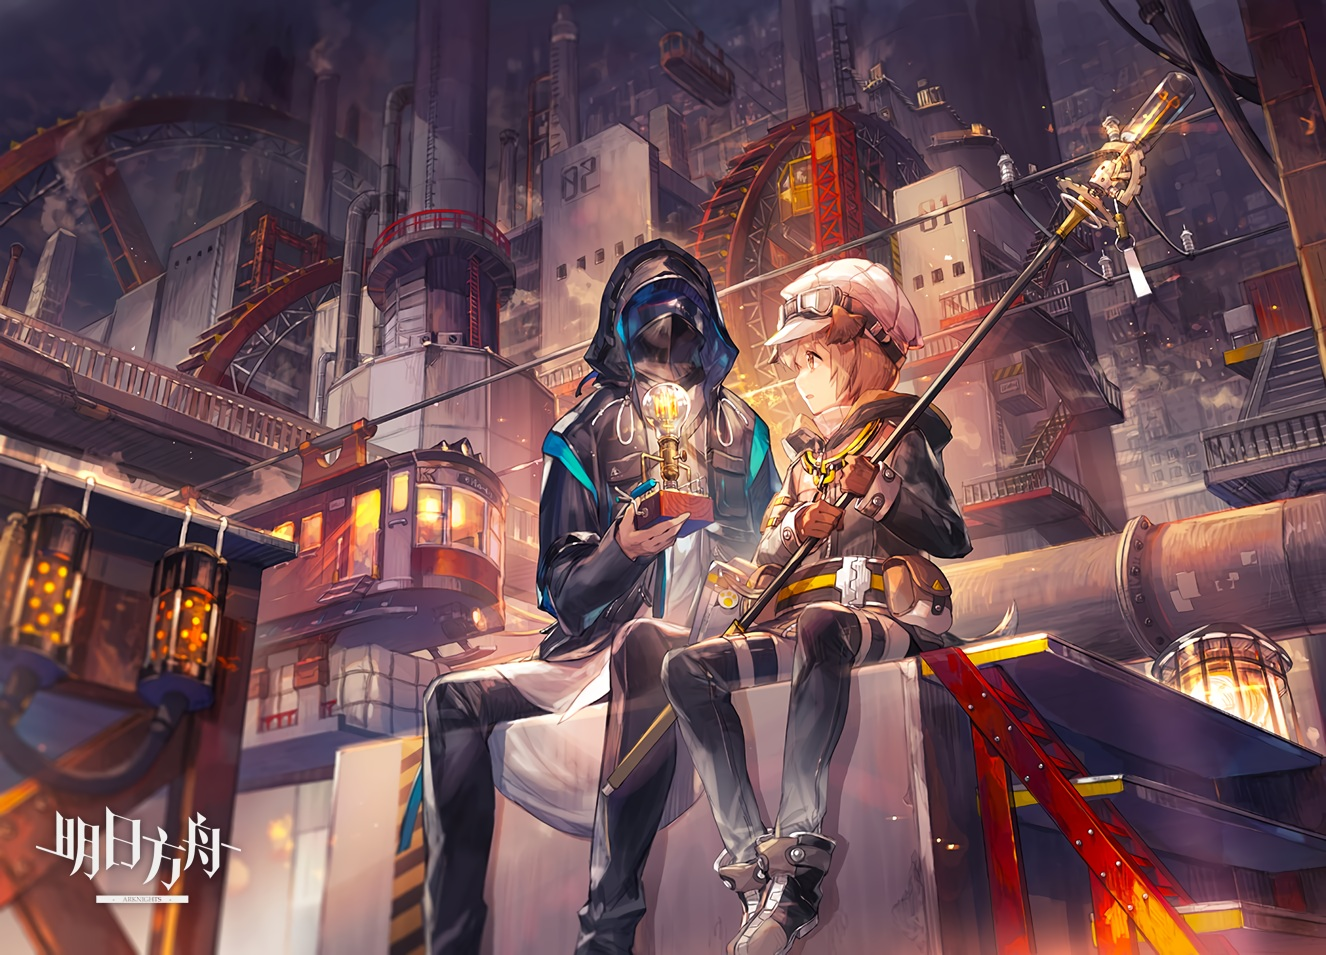 all_male animal_ears arknights brown_hair building doctor_(arknights) gloves goggles greyy_(arknights) hat industrial logo male scorpion5050 short_hair staff tail